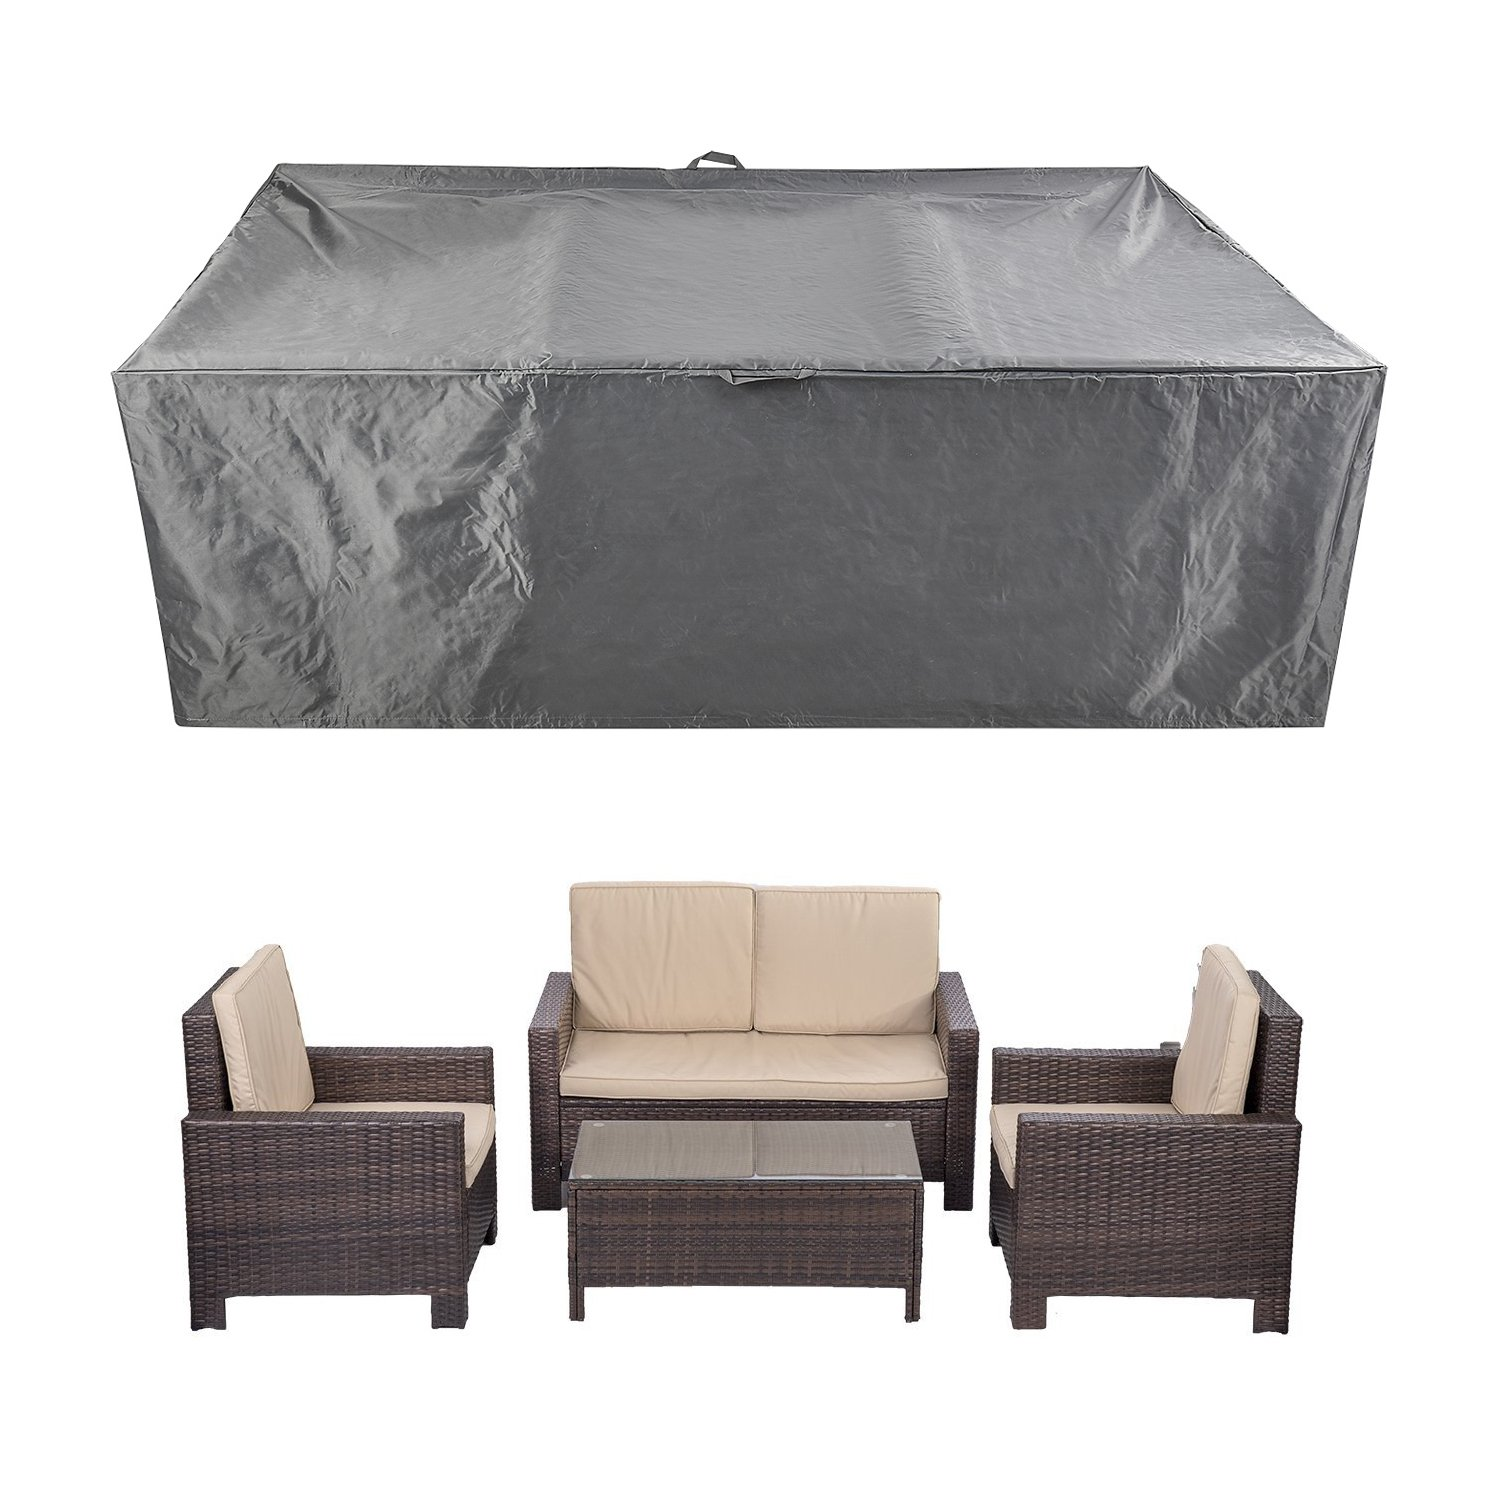 Patio Furniture Set Covers Waterproof Outdoor Table Covers Sectional Conversation Loveseat Sofa Set Covers Waterproof Durable Heavy Duty  88'' L x 58'' W x 28'' H